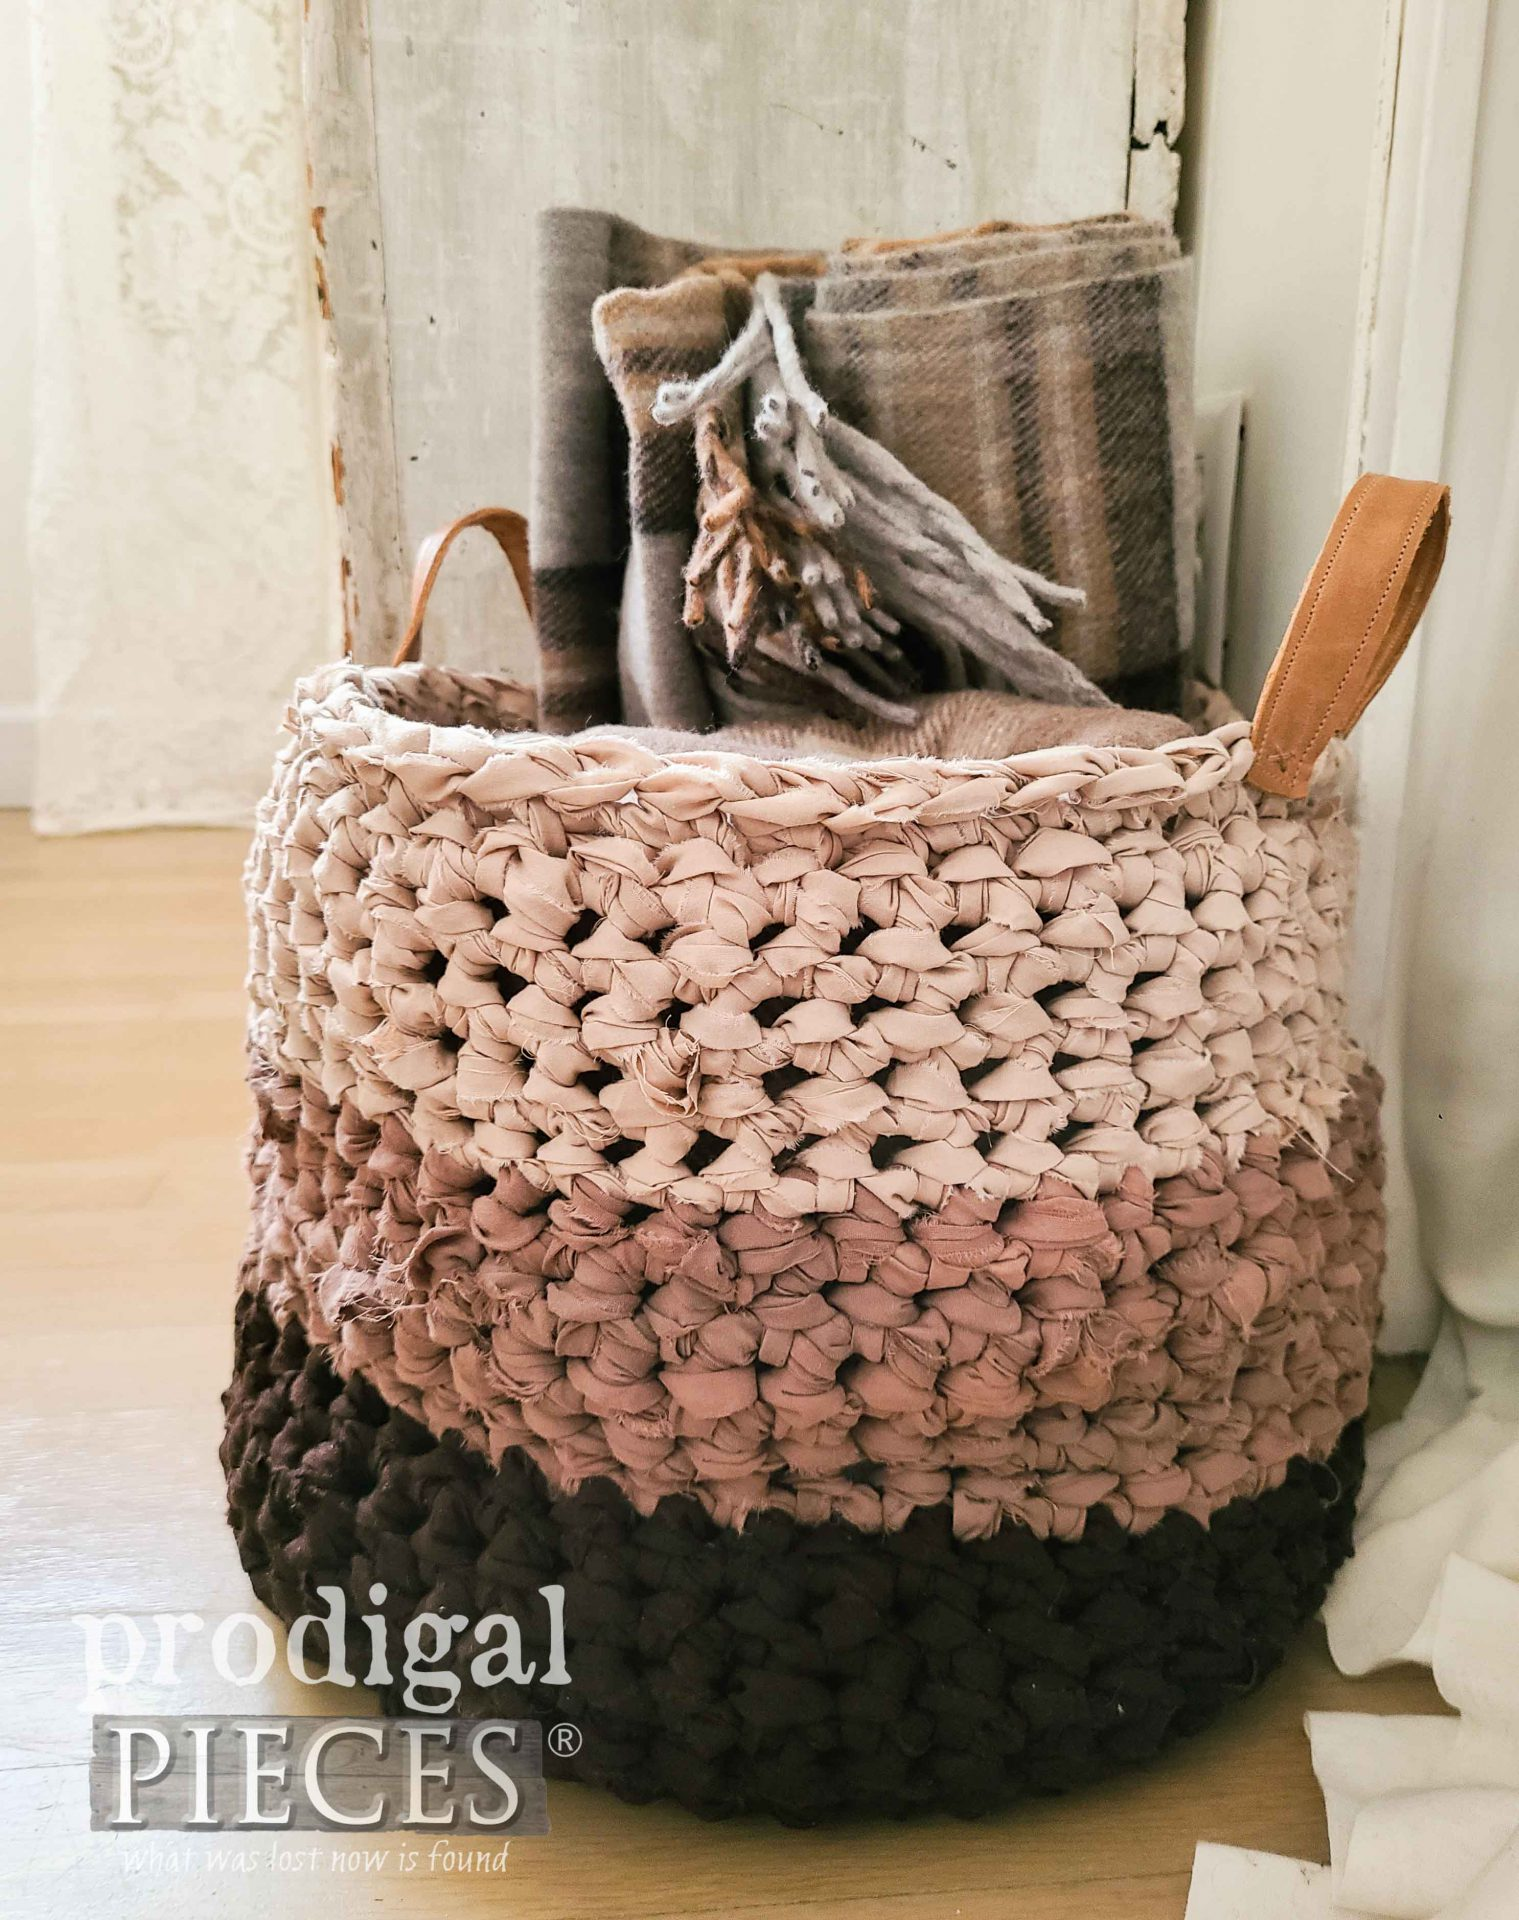 Upcycled Bed Sheets Yarn into Crochet Basket by Larissa of Prodigal Pieces | prodigalpieces.com #prodigalpieces #diy #home #crafts #crochet